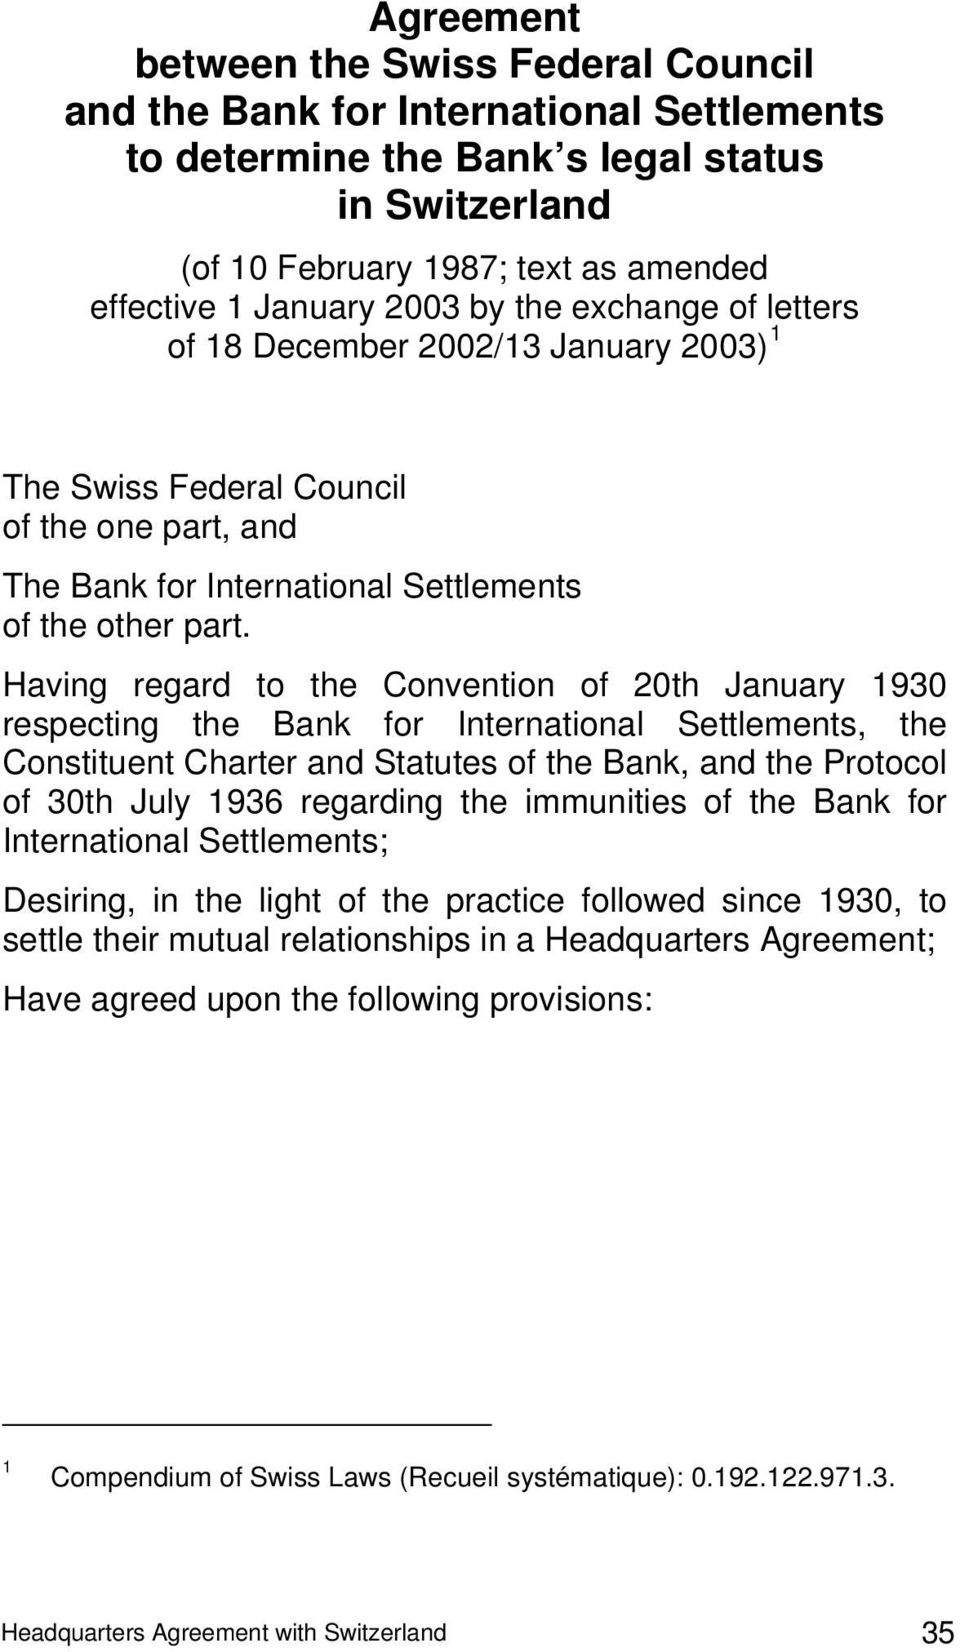 Having regard to the Convention of 20th January 1930 respecting the Bank for International Settlements, the Constituent Charter and Statutes of the Bank, and the Protocol of 30th July 1936 regarding